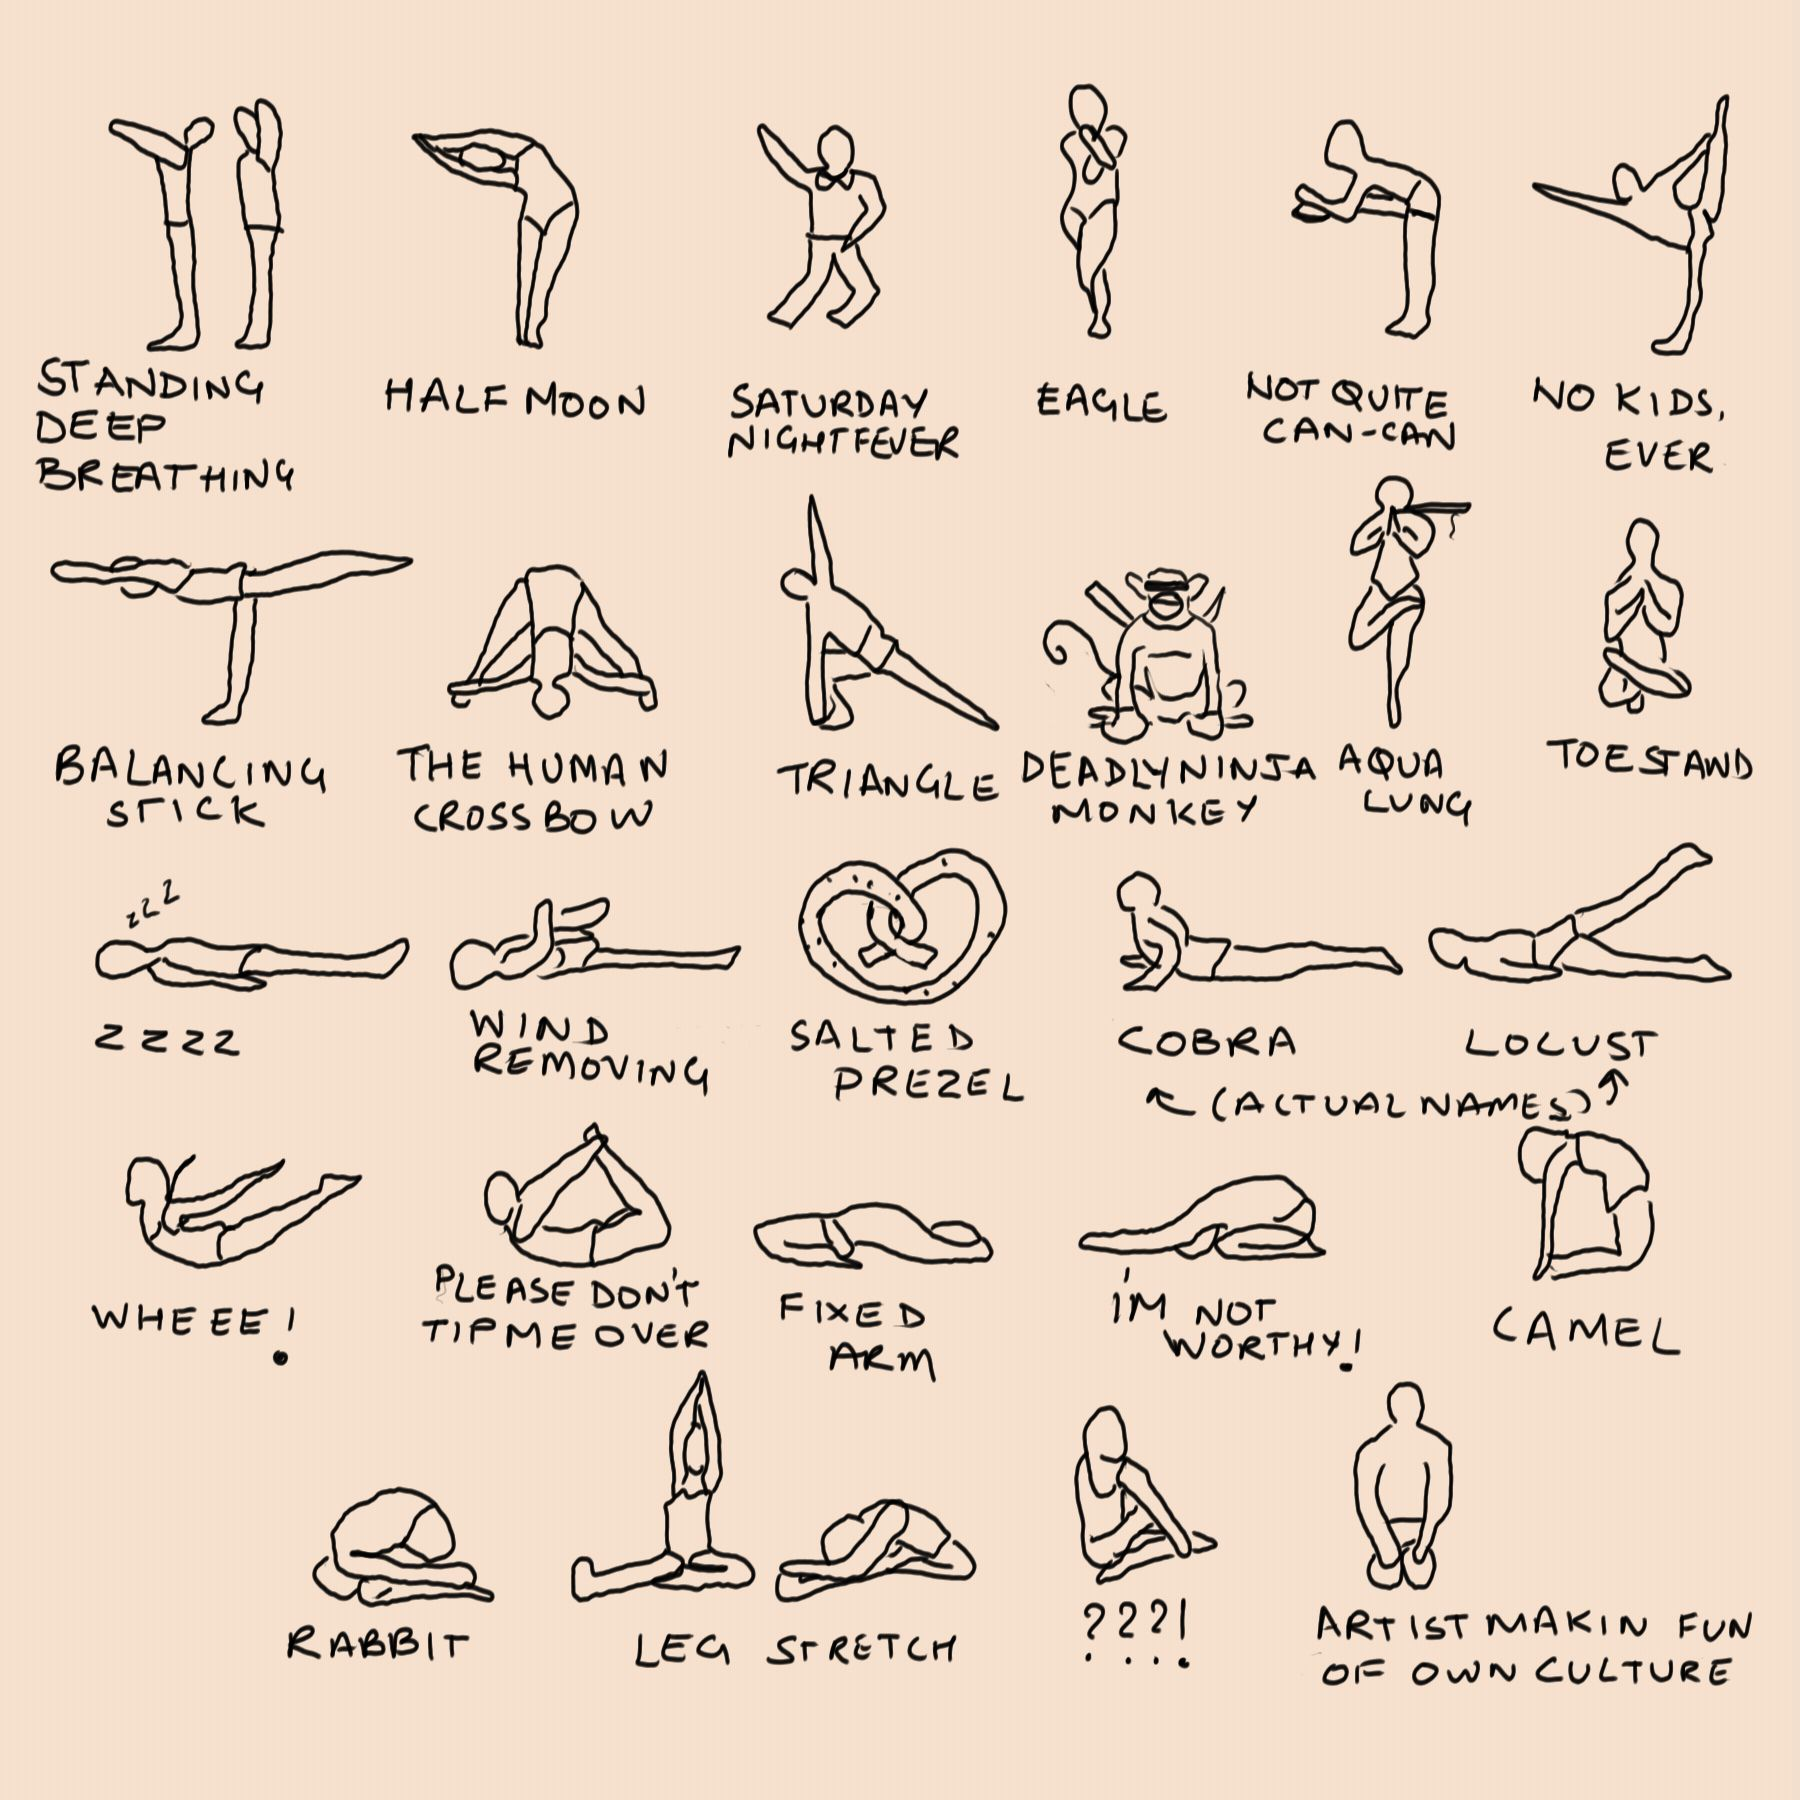 Actual Names For Yoga Poses